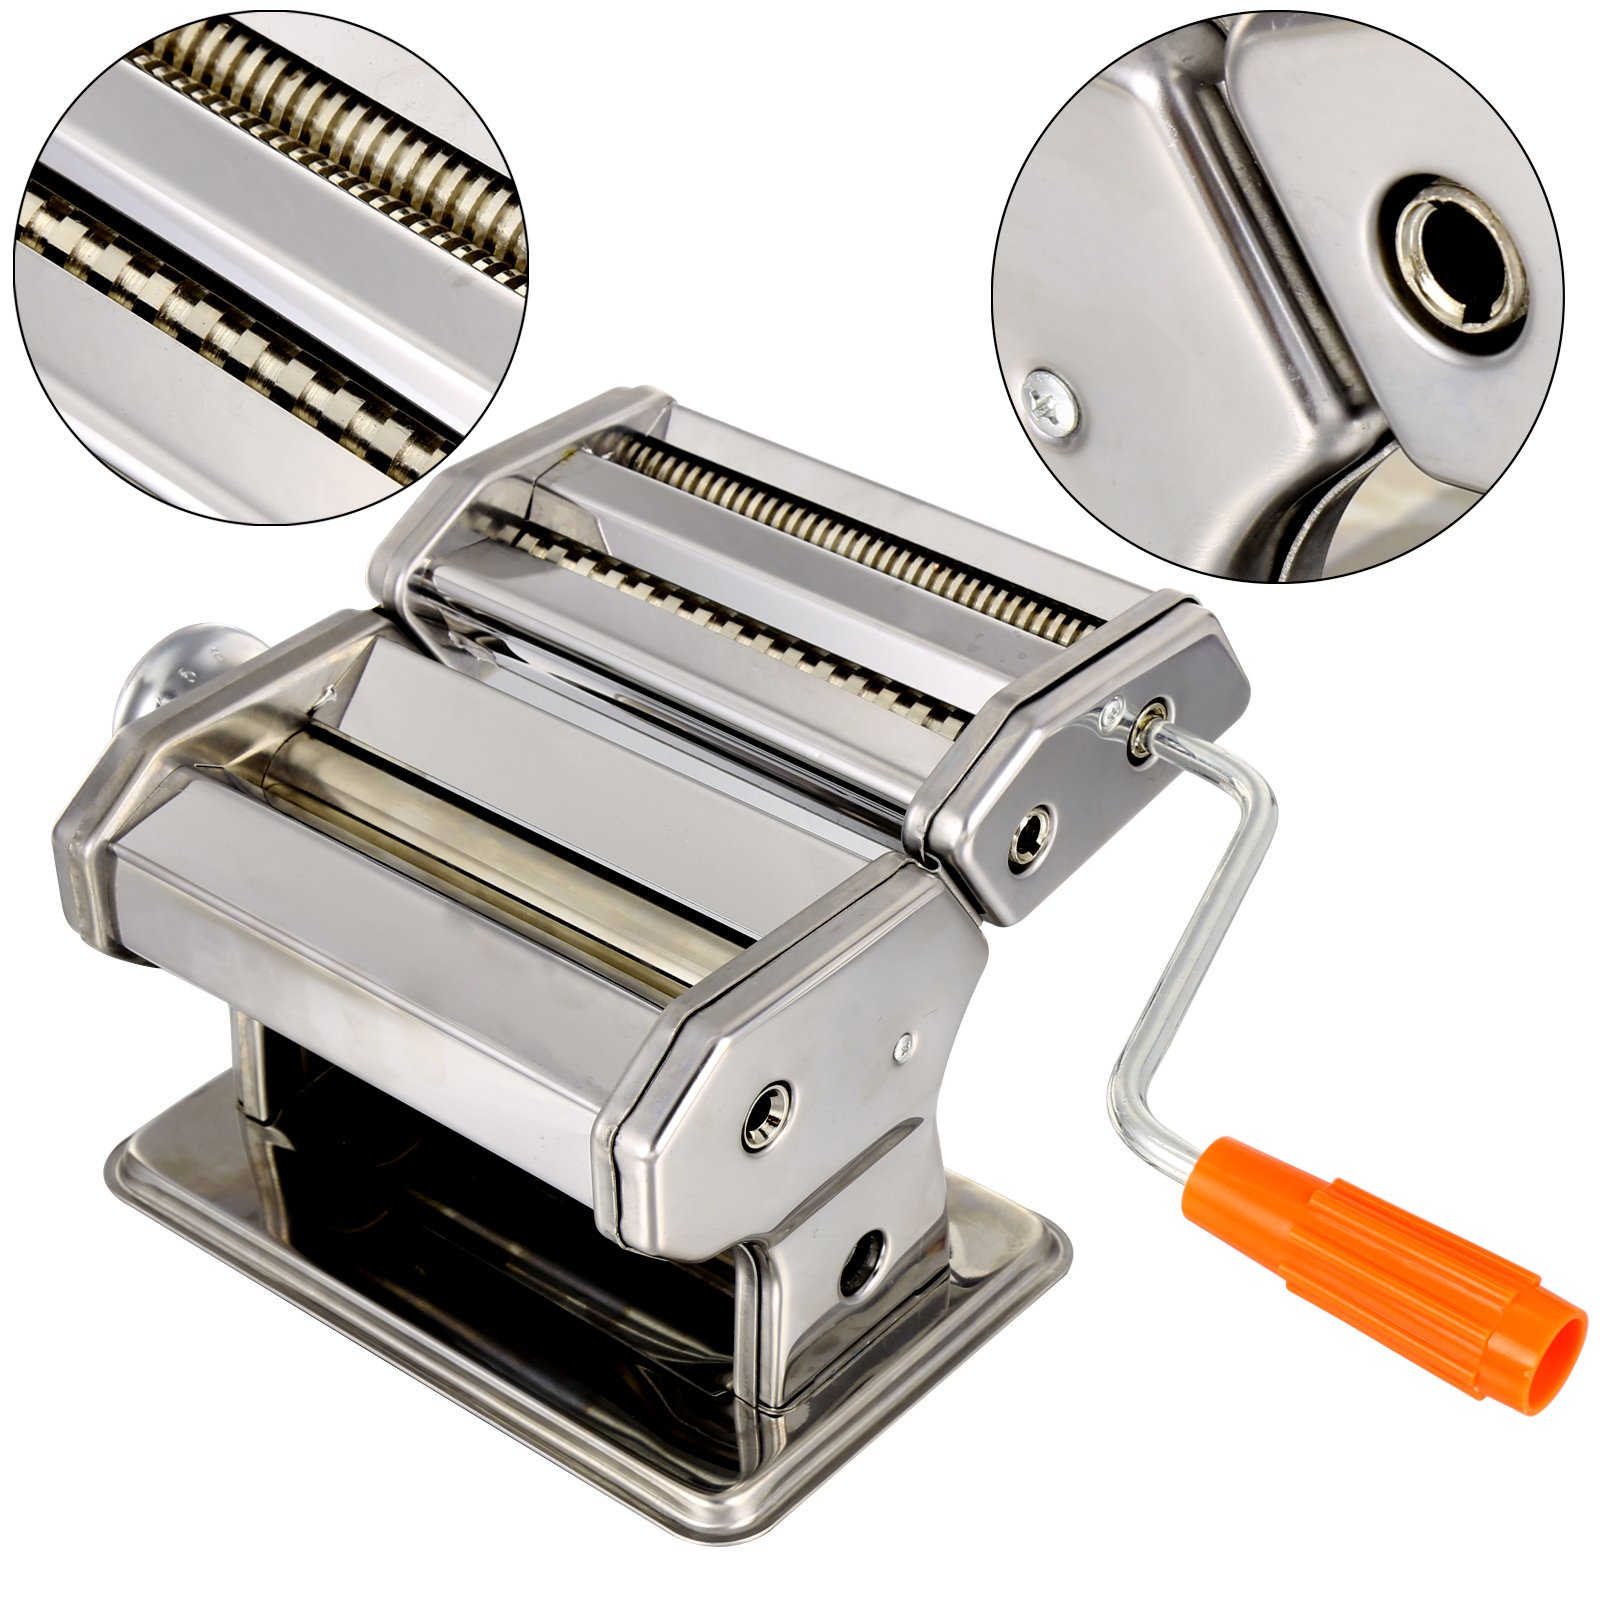 Pasta Maker Machine, Stainless Steel roller and cutter for Spaghetti , Fettuccine and Noodle , include 2 Blades (TYPE B) by Jaketen (Image #5)